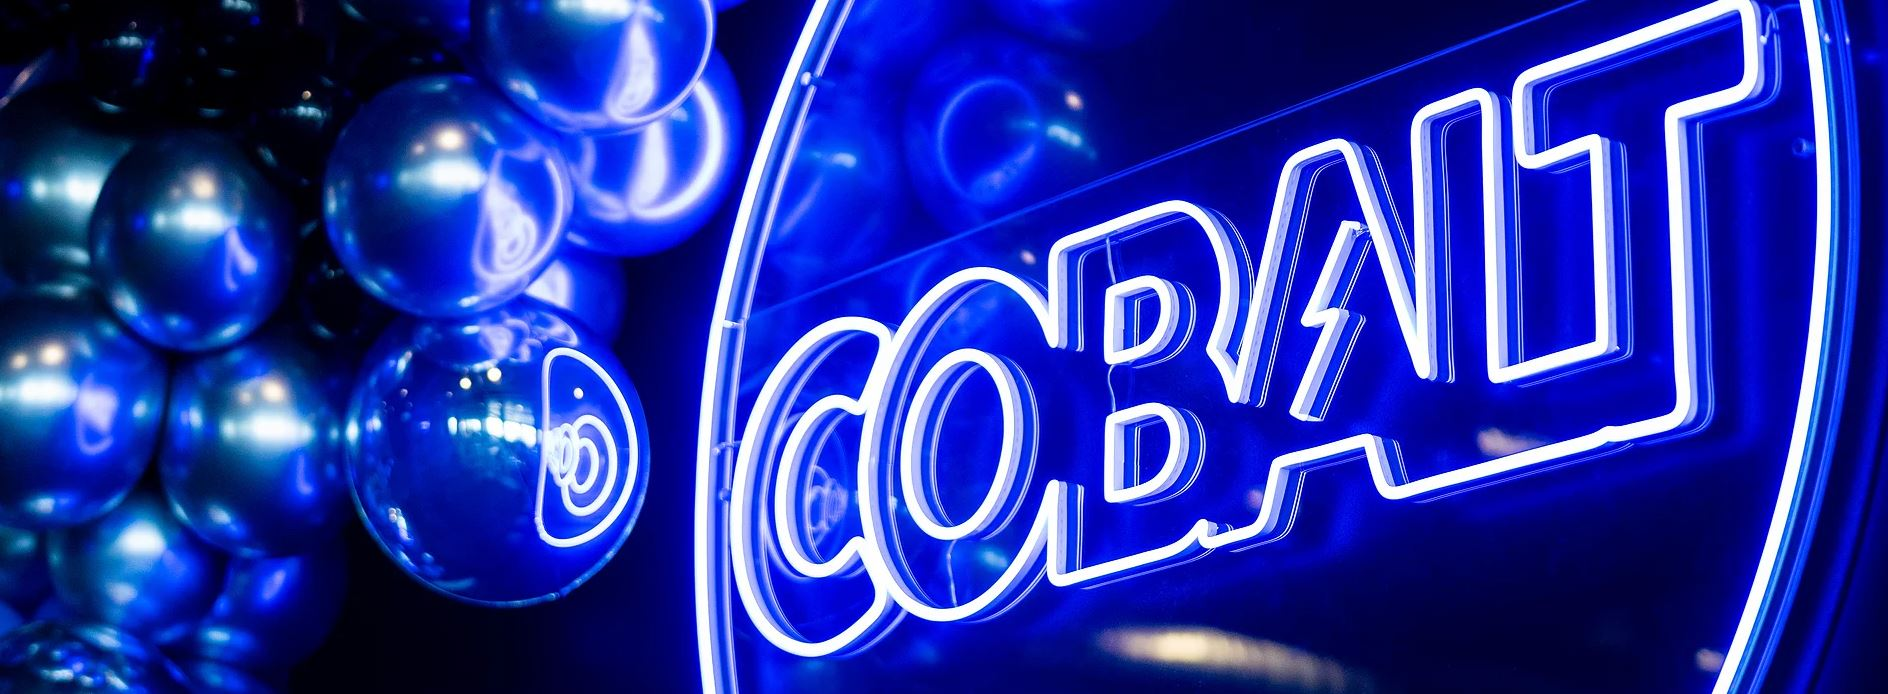 Cobalt Club gym logo in neon on the wall